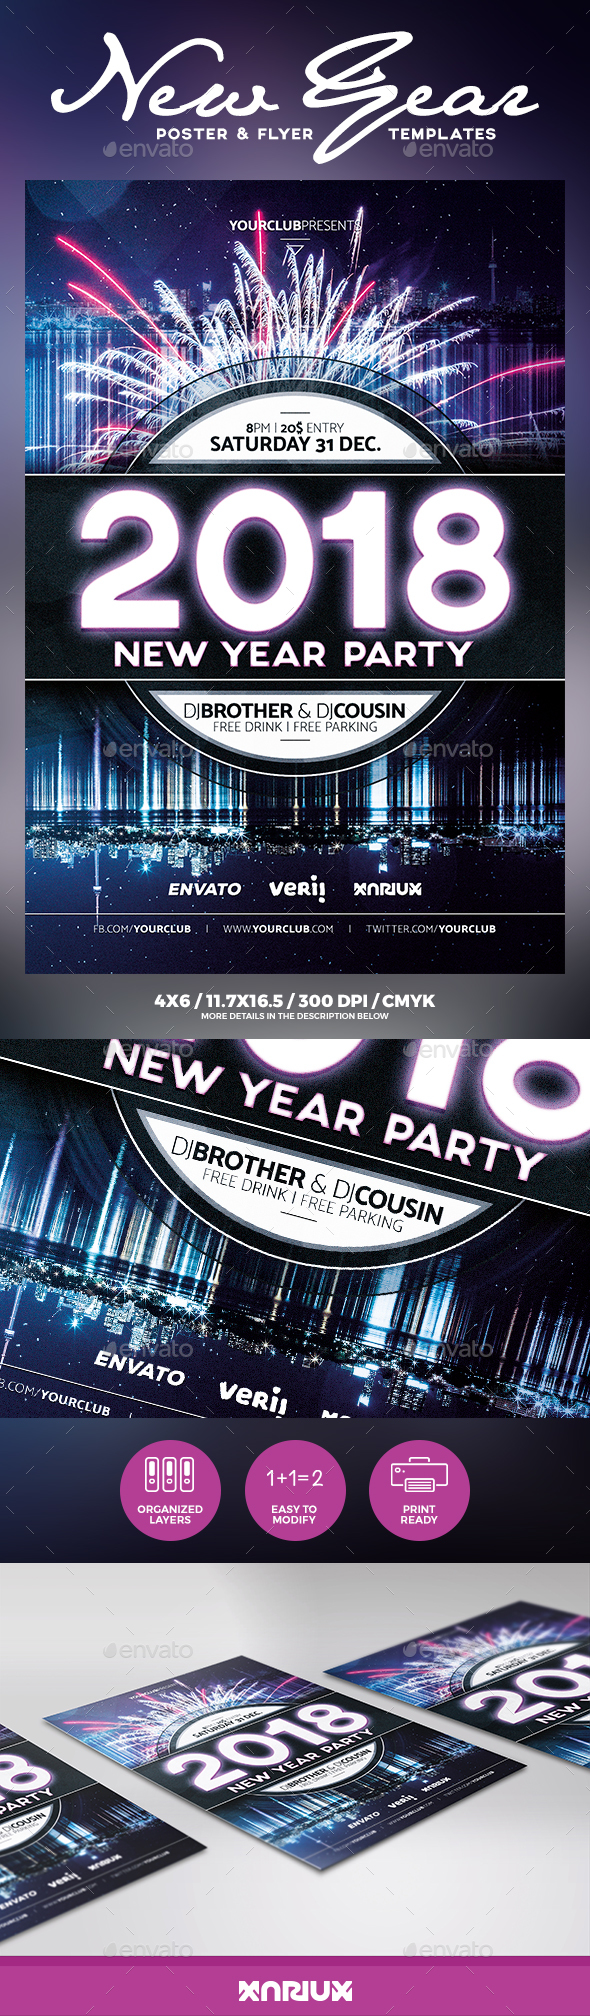 New Year Party Flyer Poster - Clubs & Parties Events